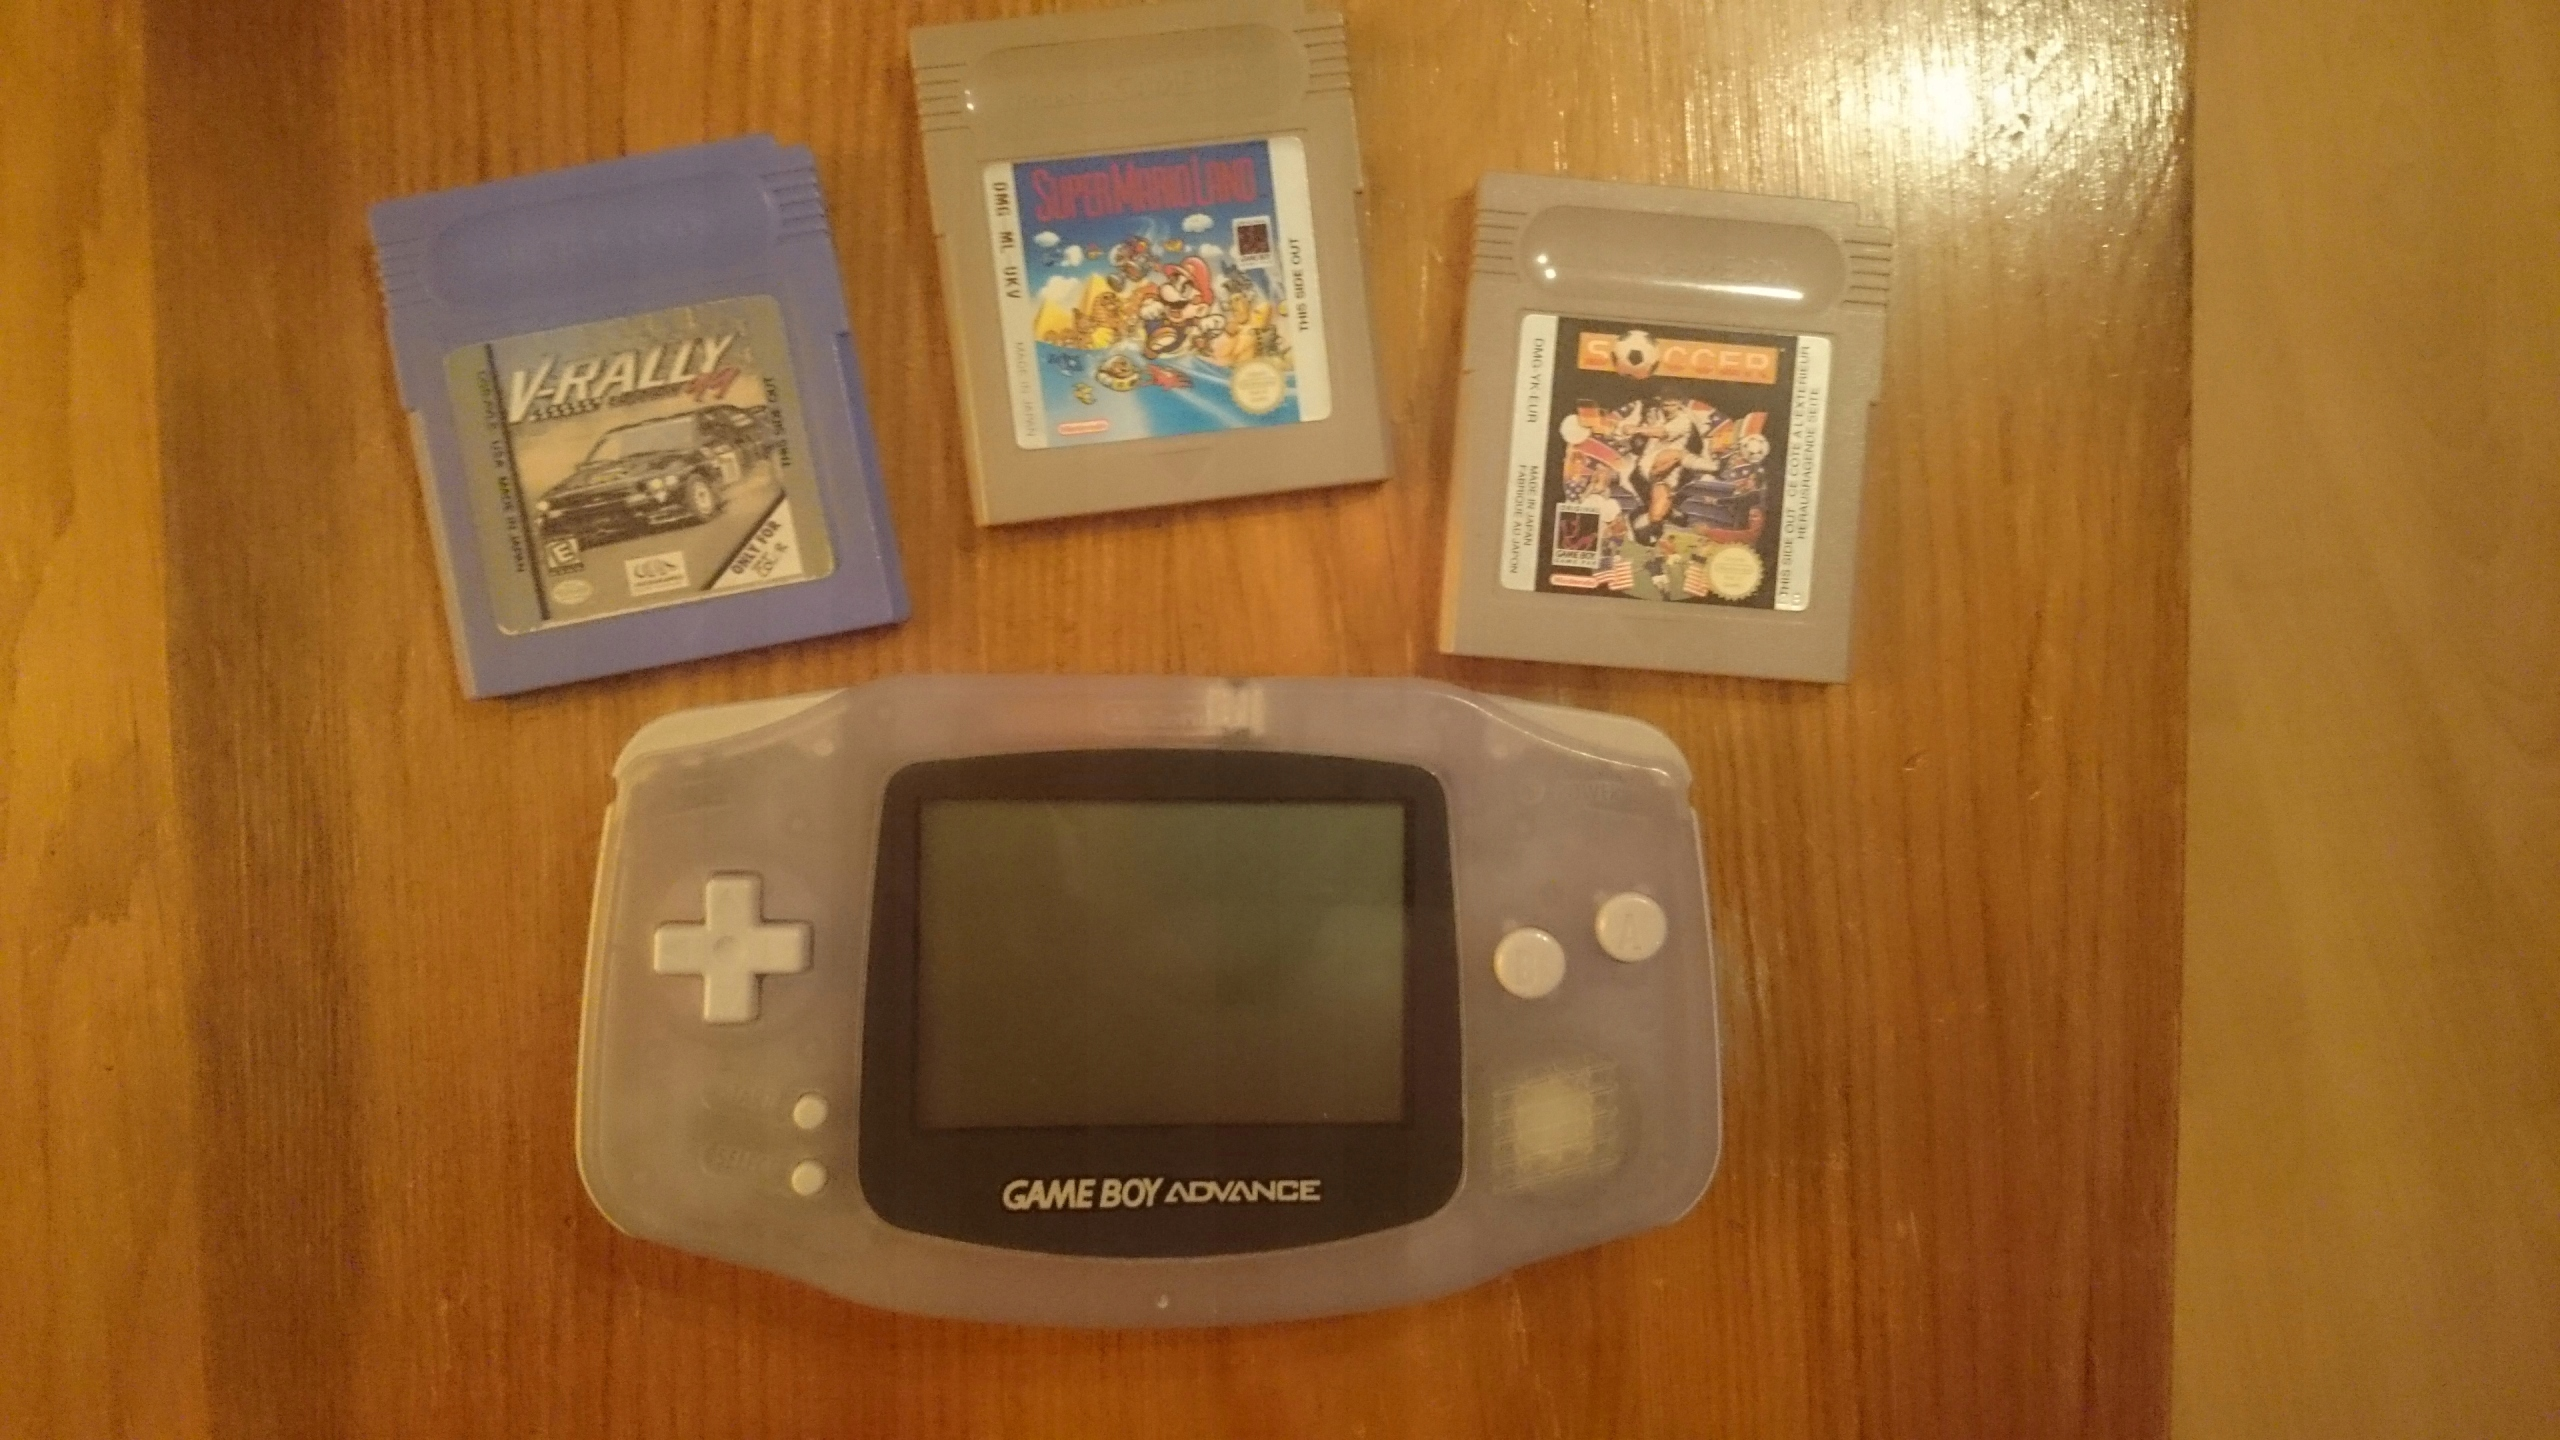 GAMEBOY ADVANCE + 3 GRY GAMEBOY COLOR